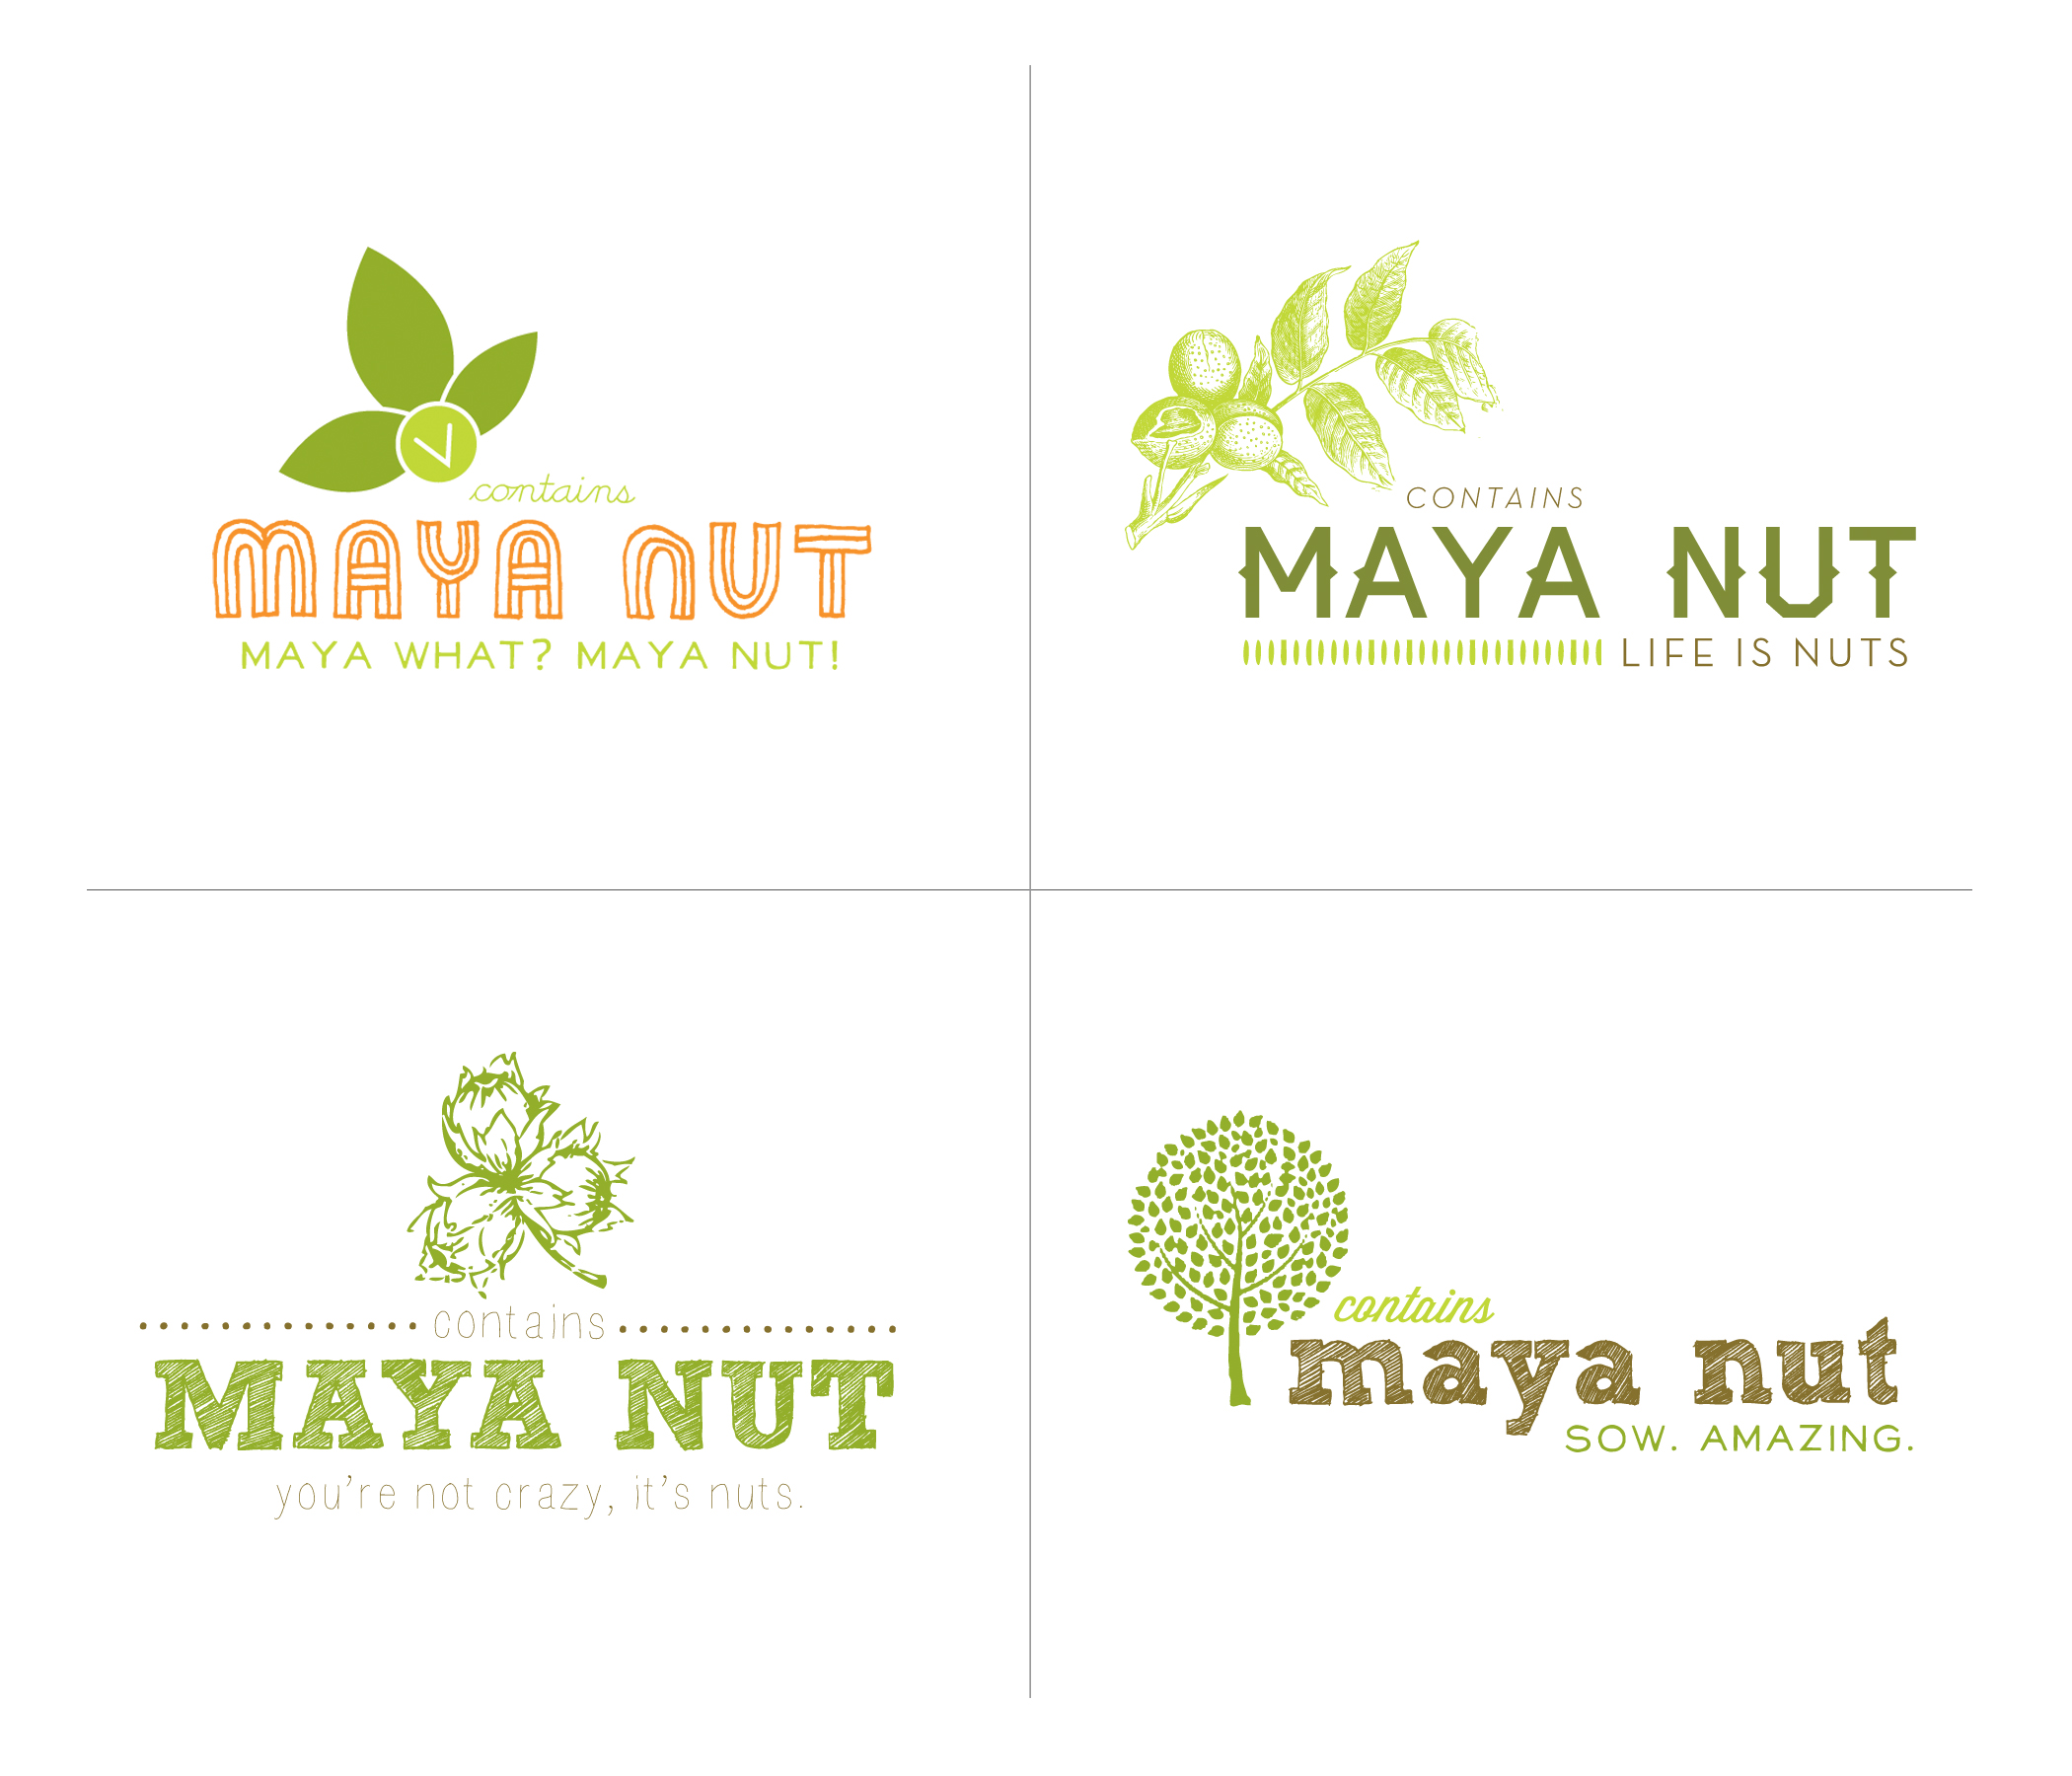 maya nut rejected